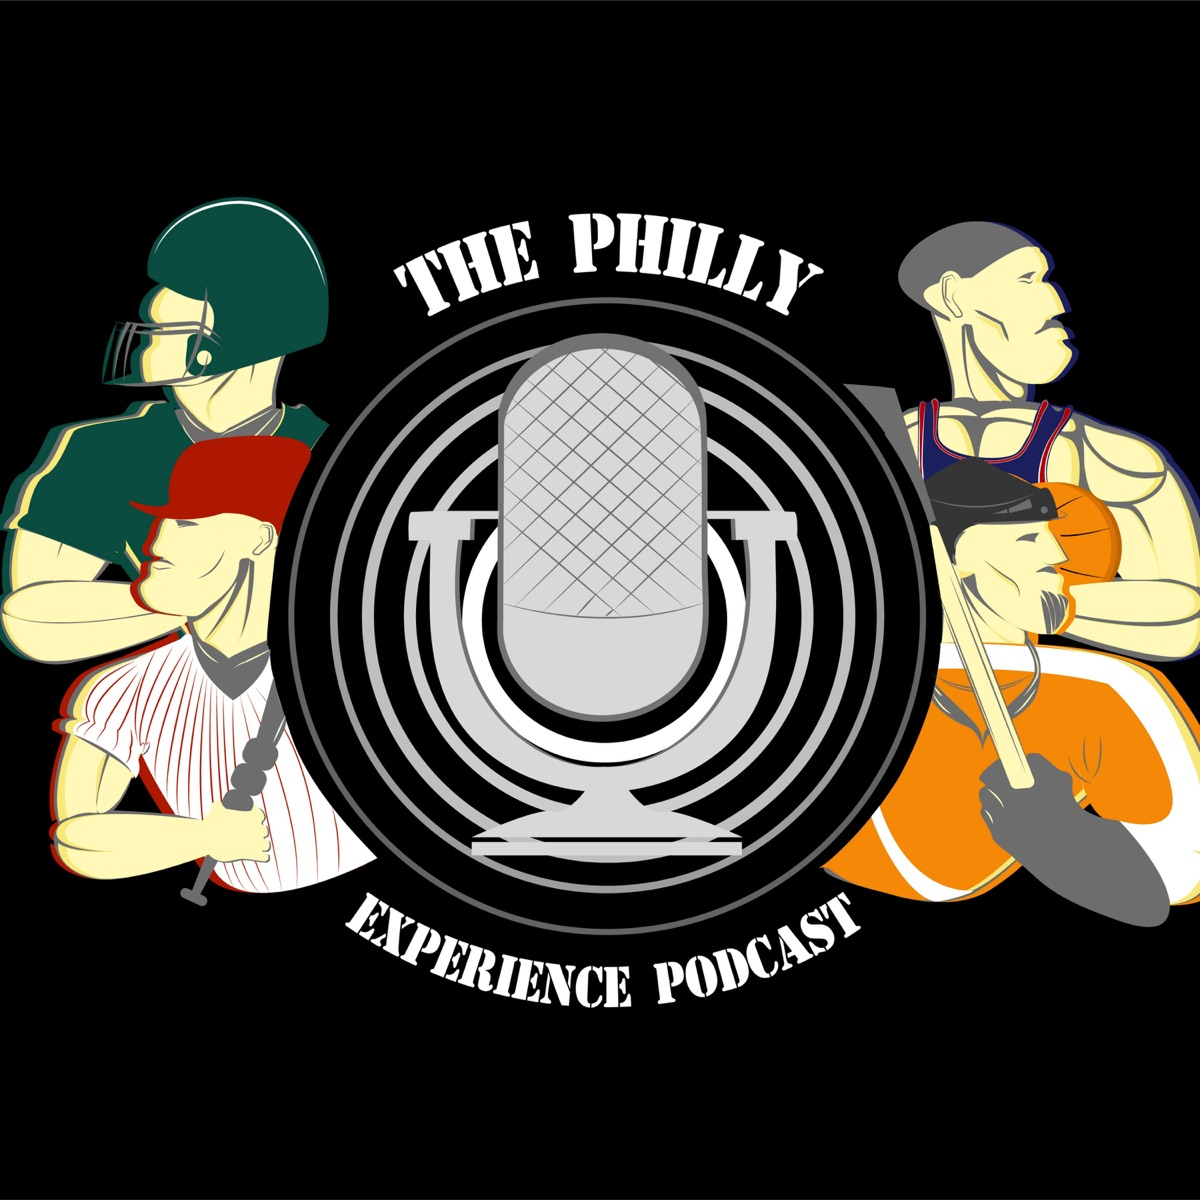 The Philly Experience Podcast